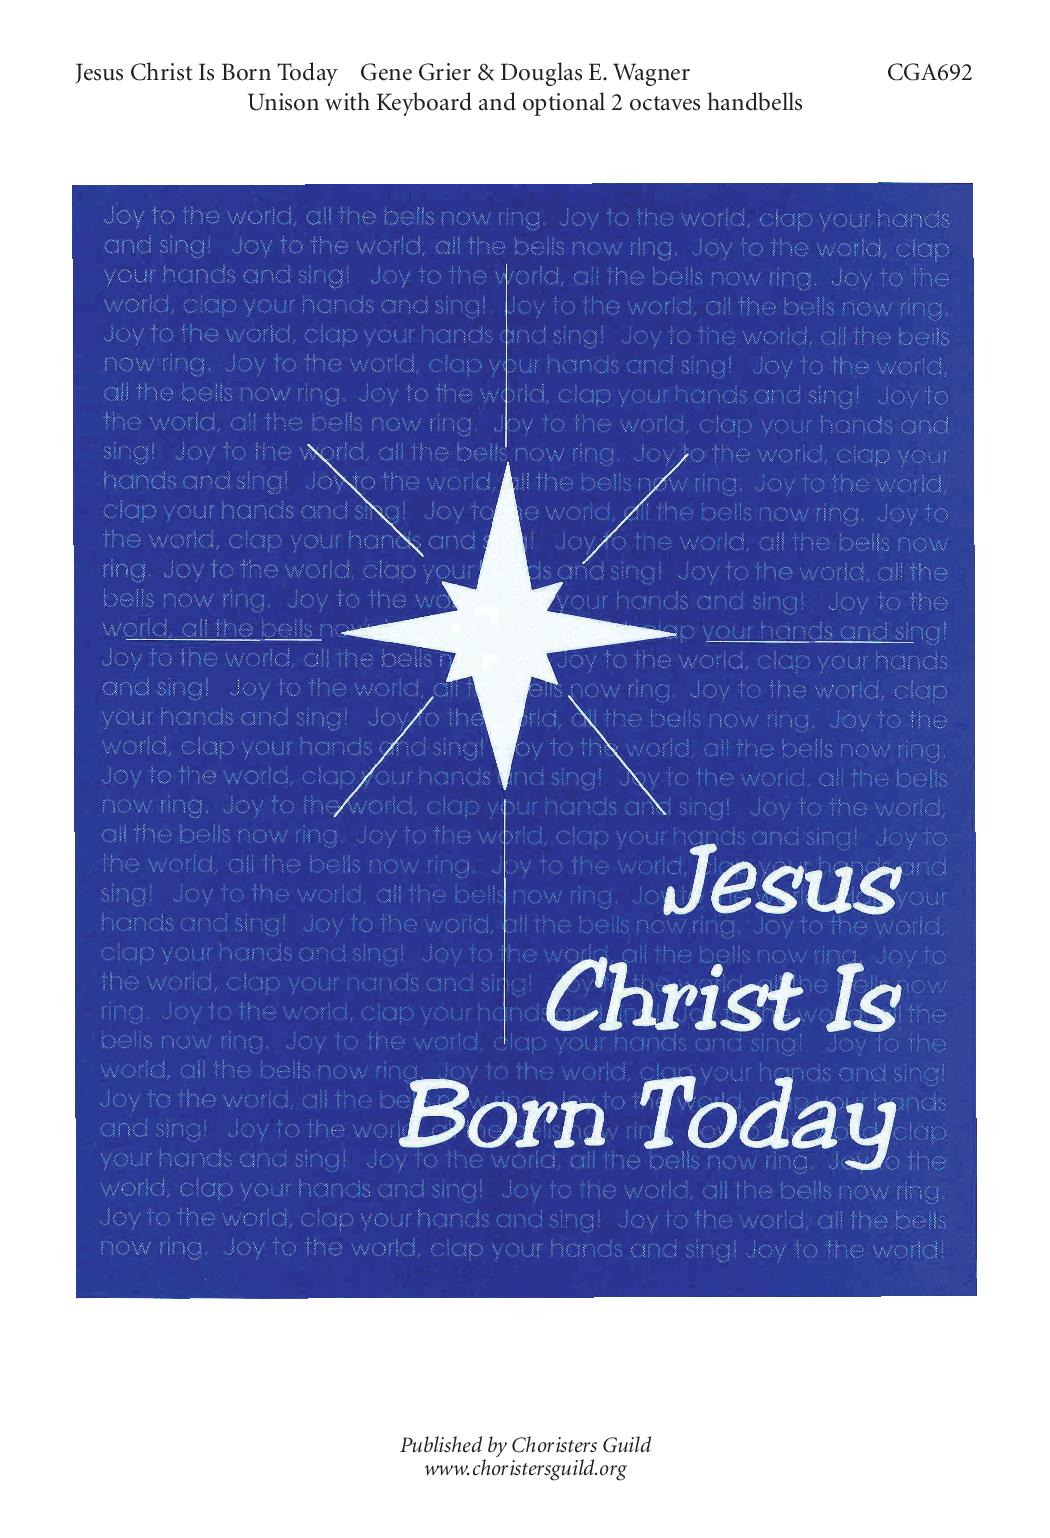 Jesus Christ Is Born Today